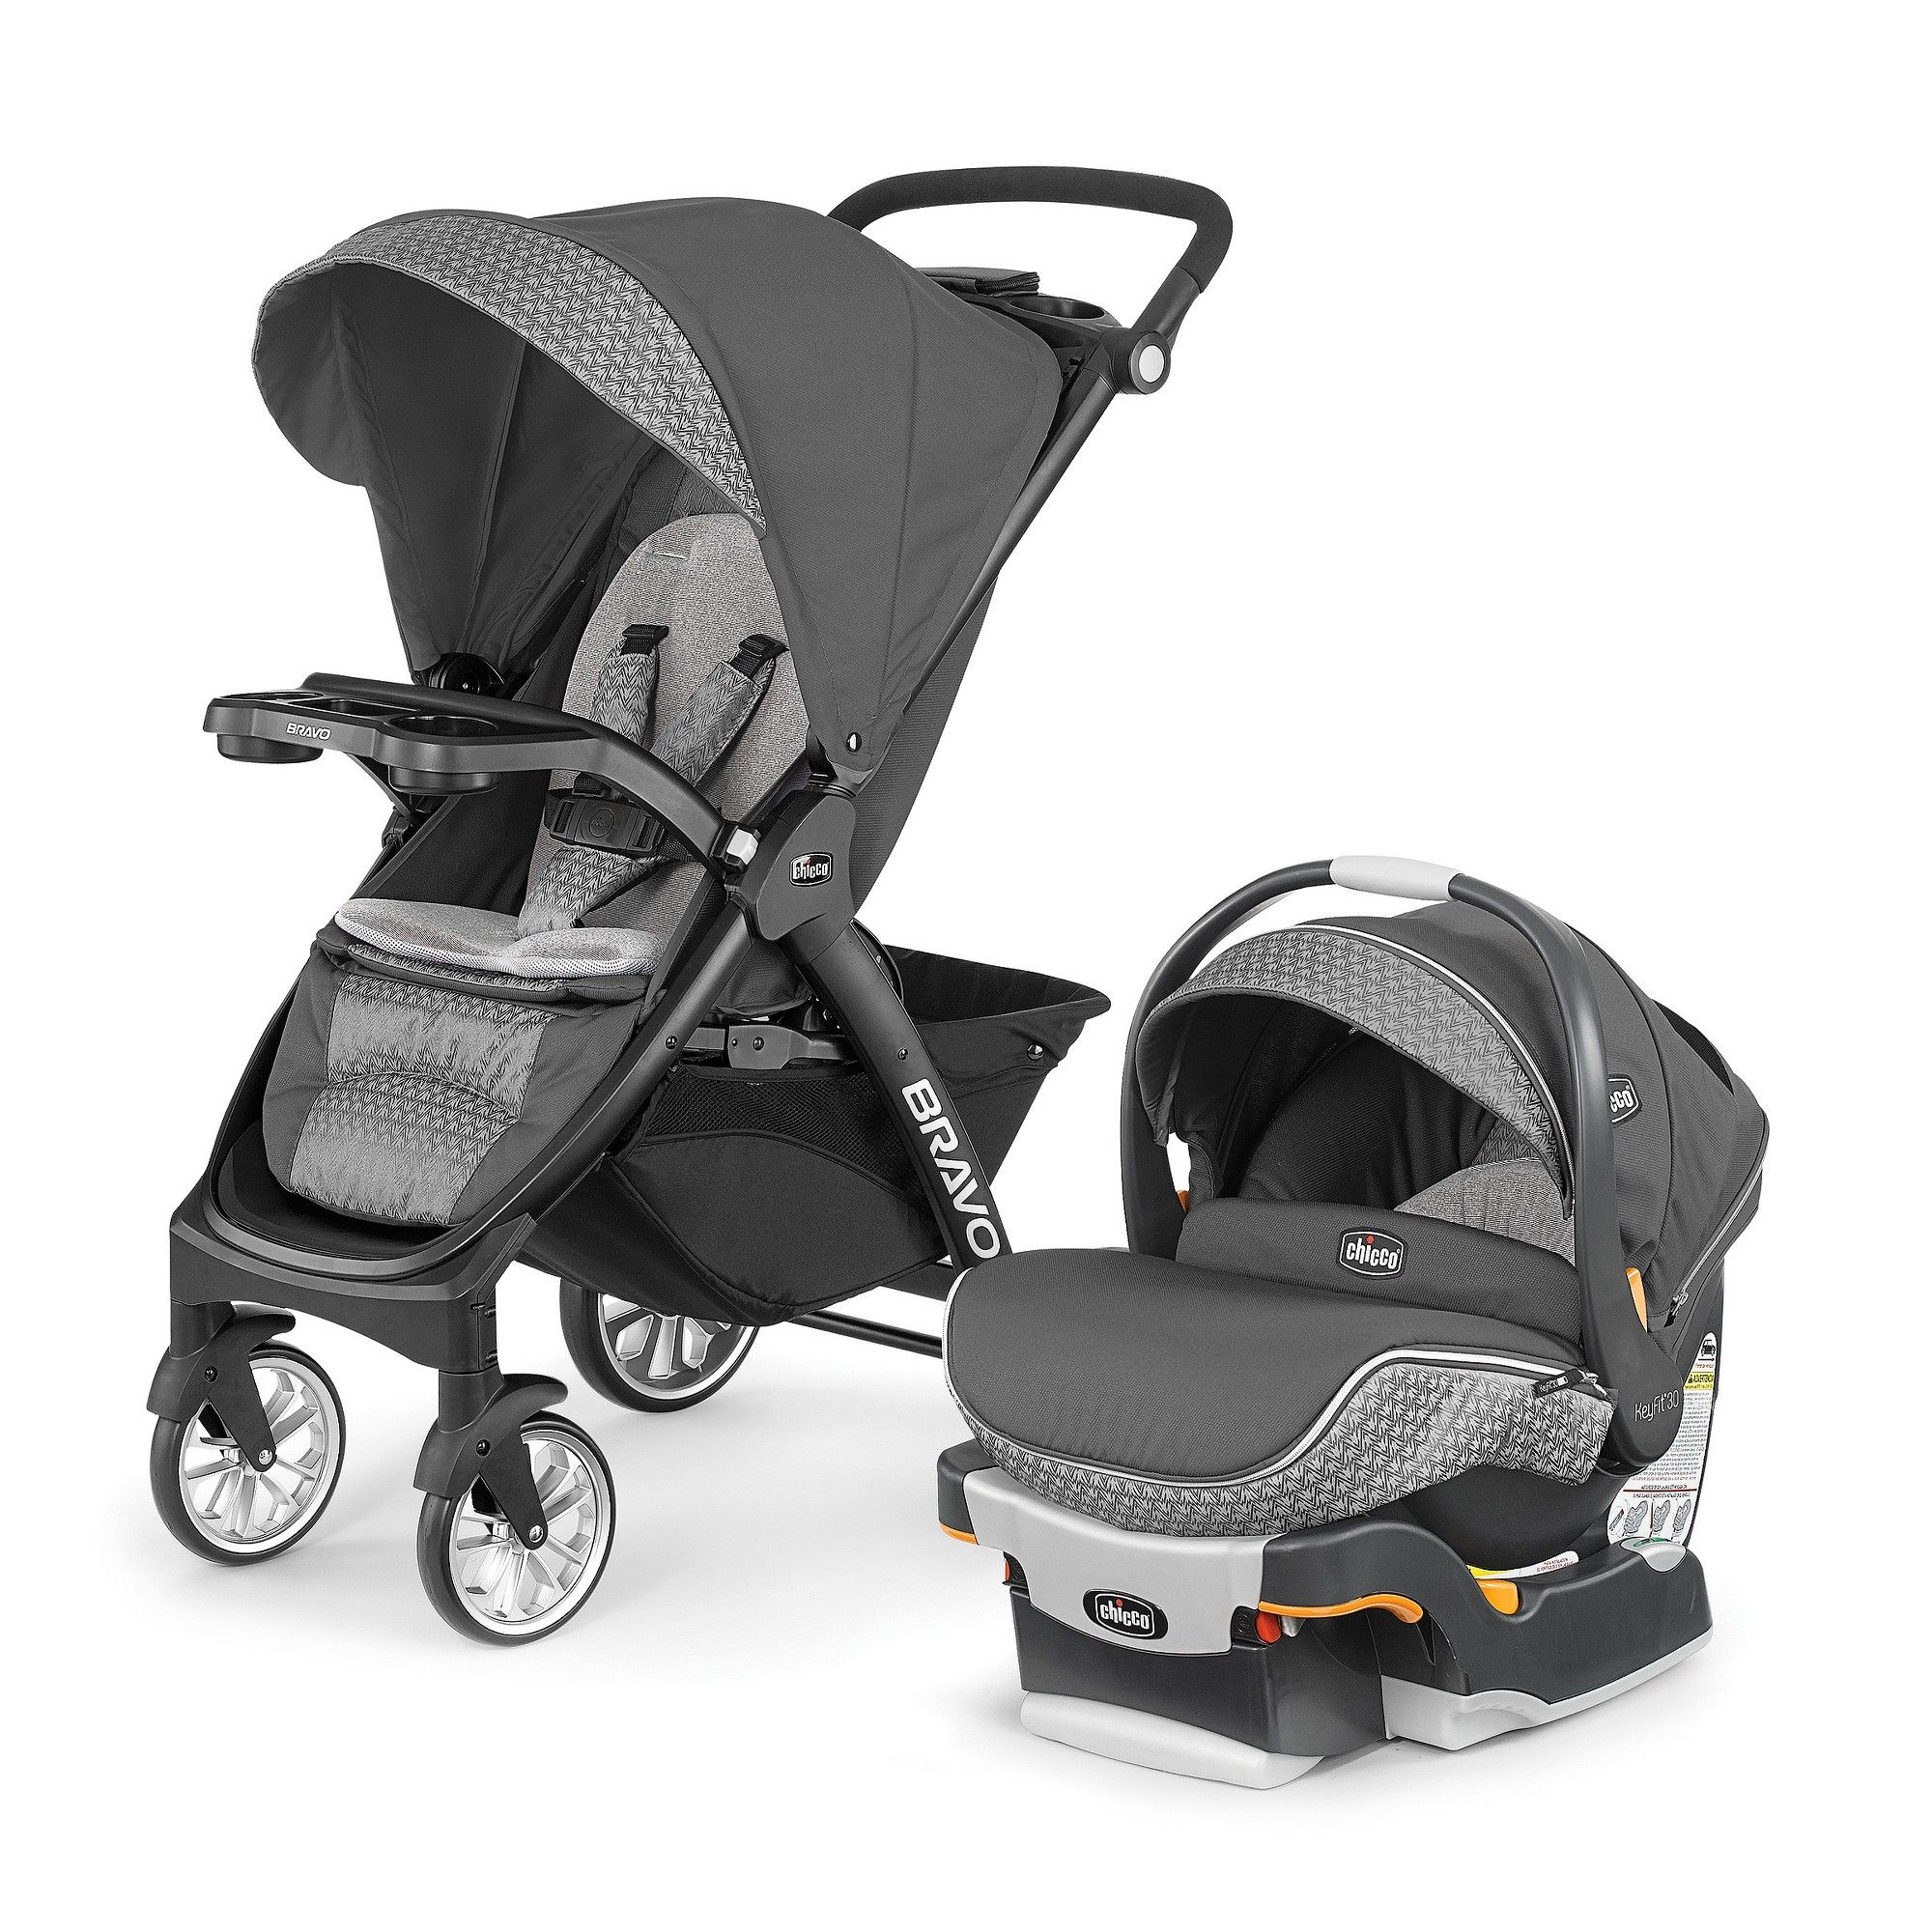 Chicco Bravo LE Travel System - Silhouette | Products | Pinterest